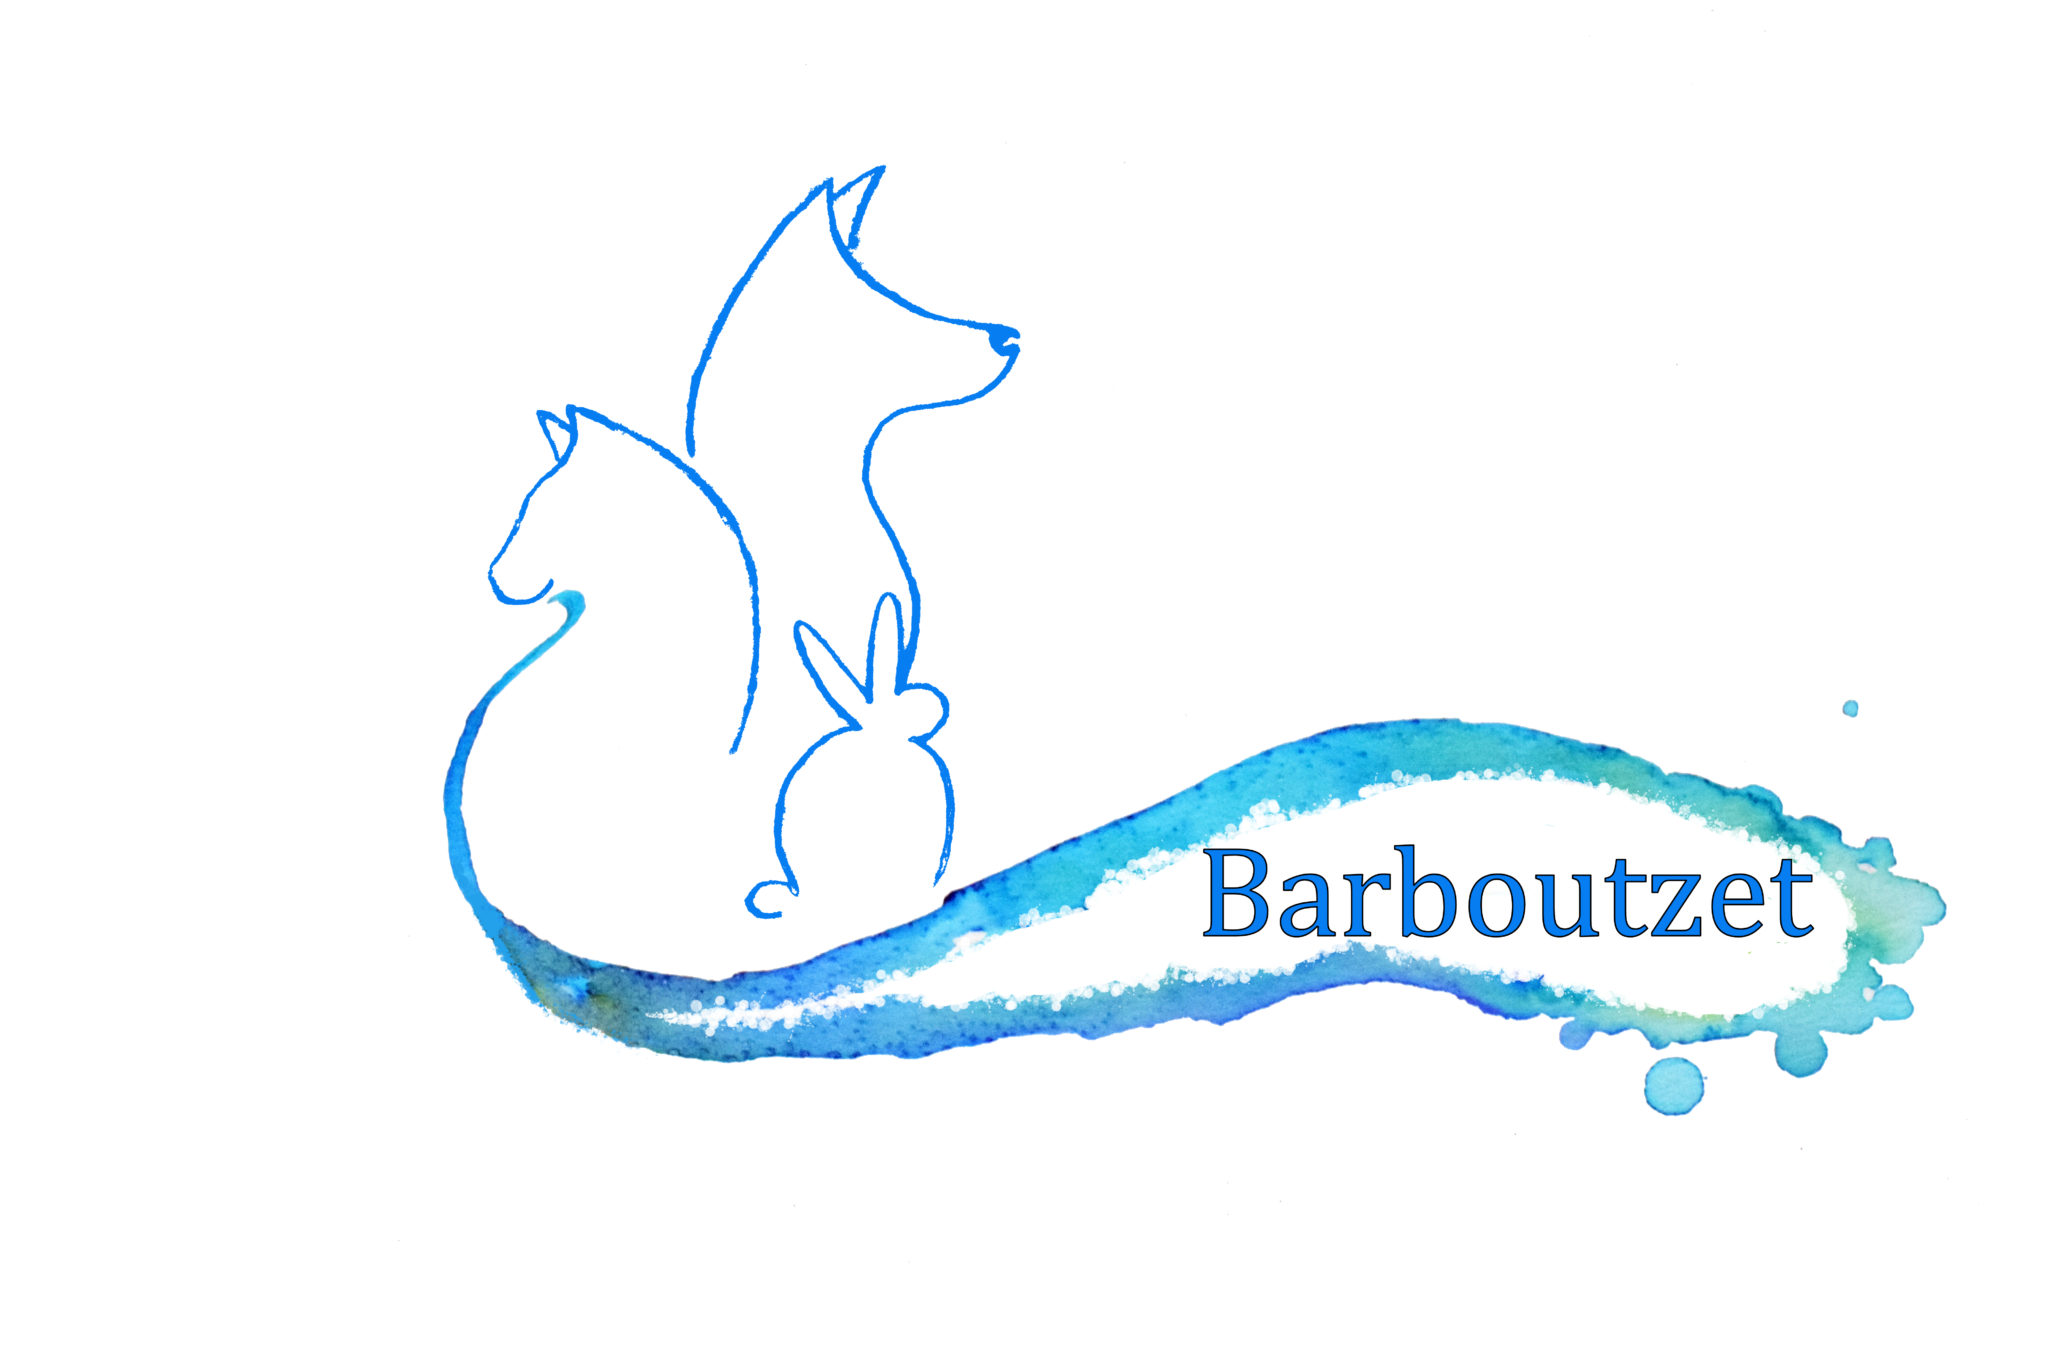 Barboutzet